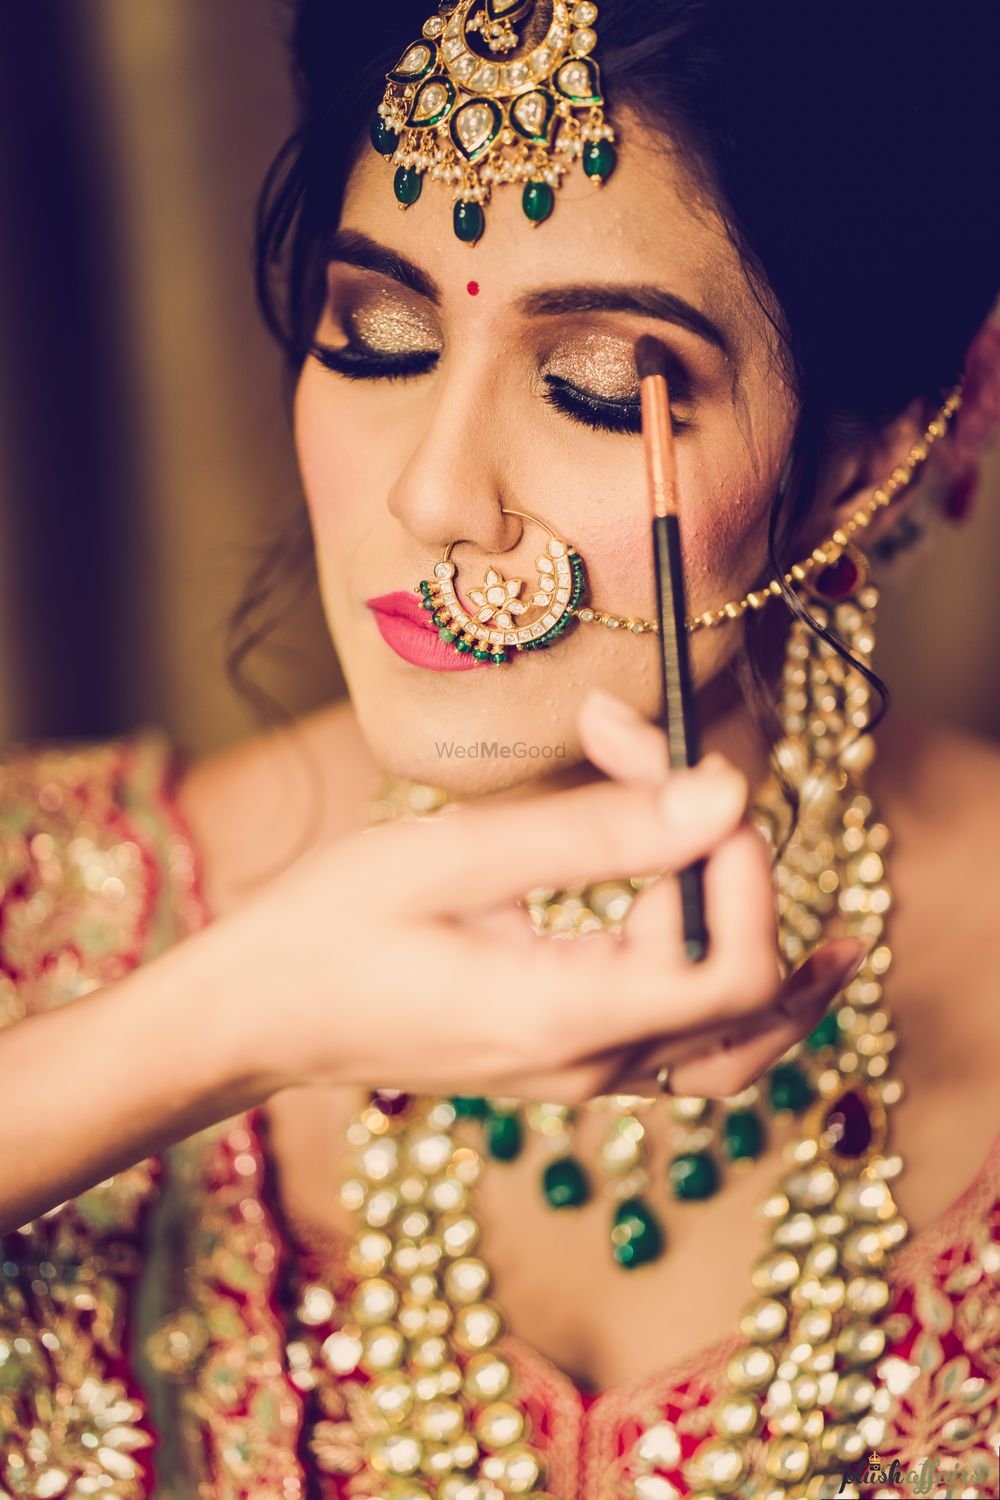 Photo of A bride getting her makeup done